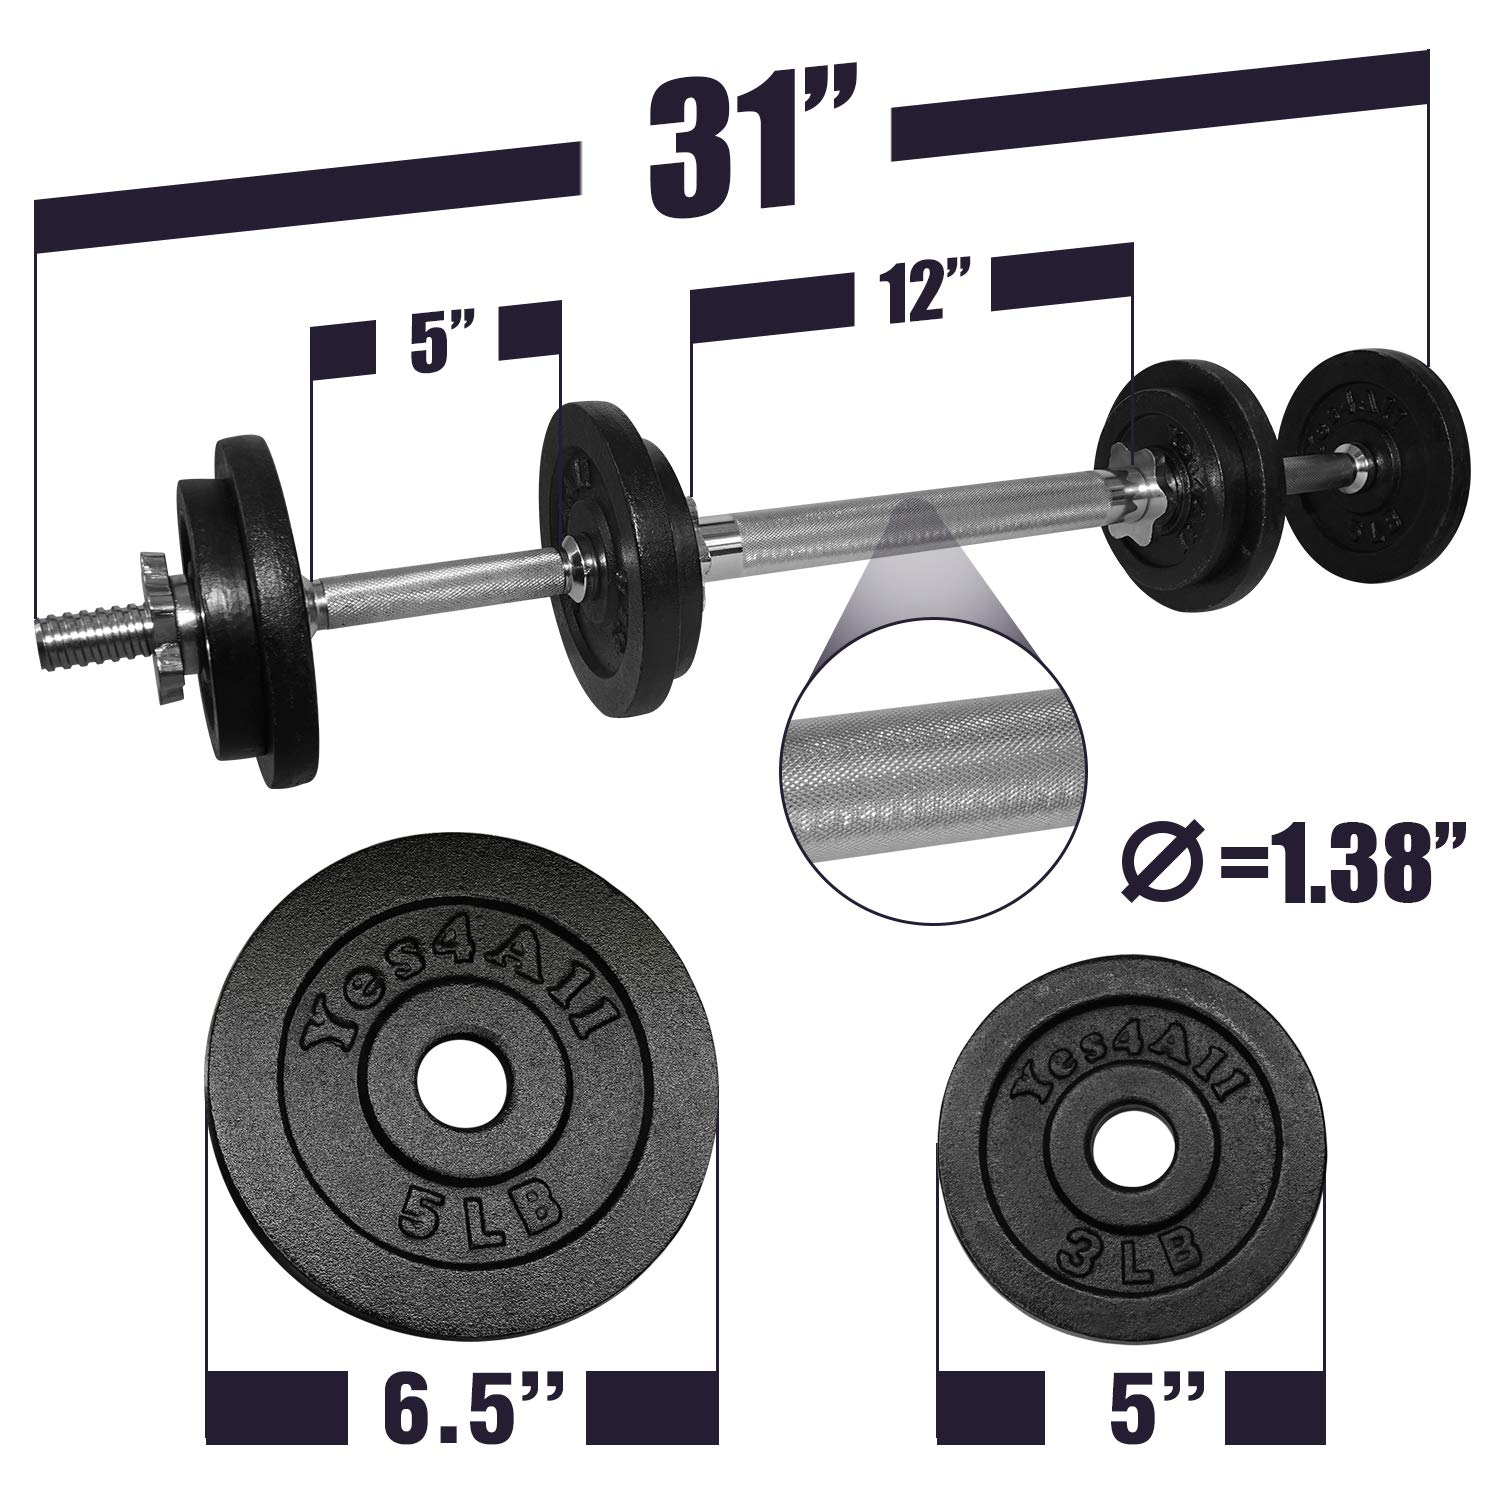 Yes4All Adjustable Dumbbell Set with Dumbbell Connector – 40 lbs Dumbbell Weights (Pair) by Yes4All (Image #2)